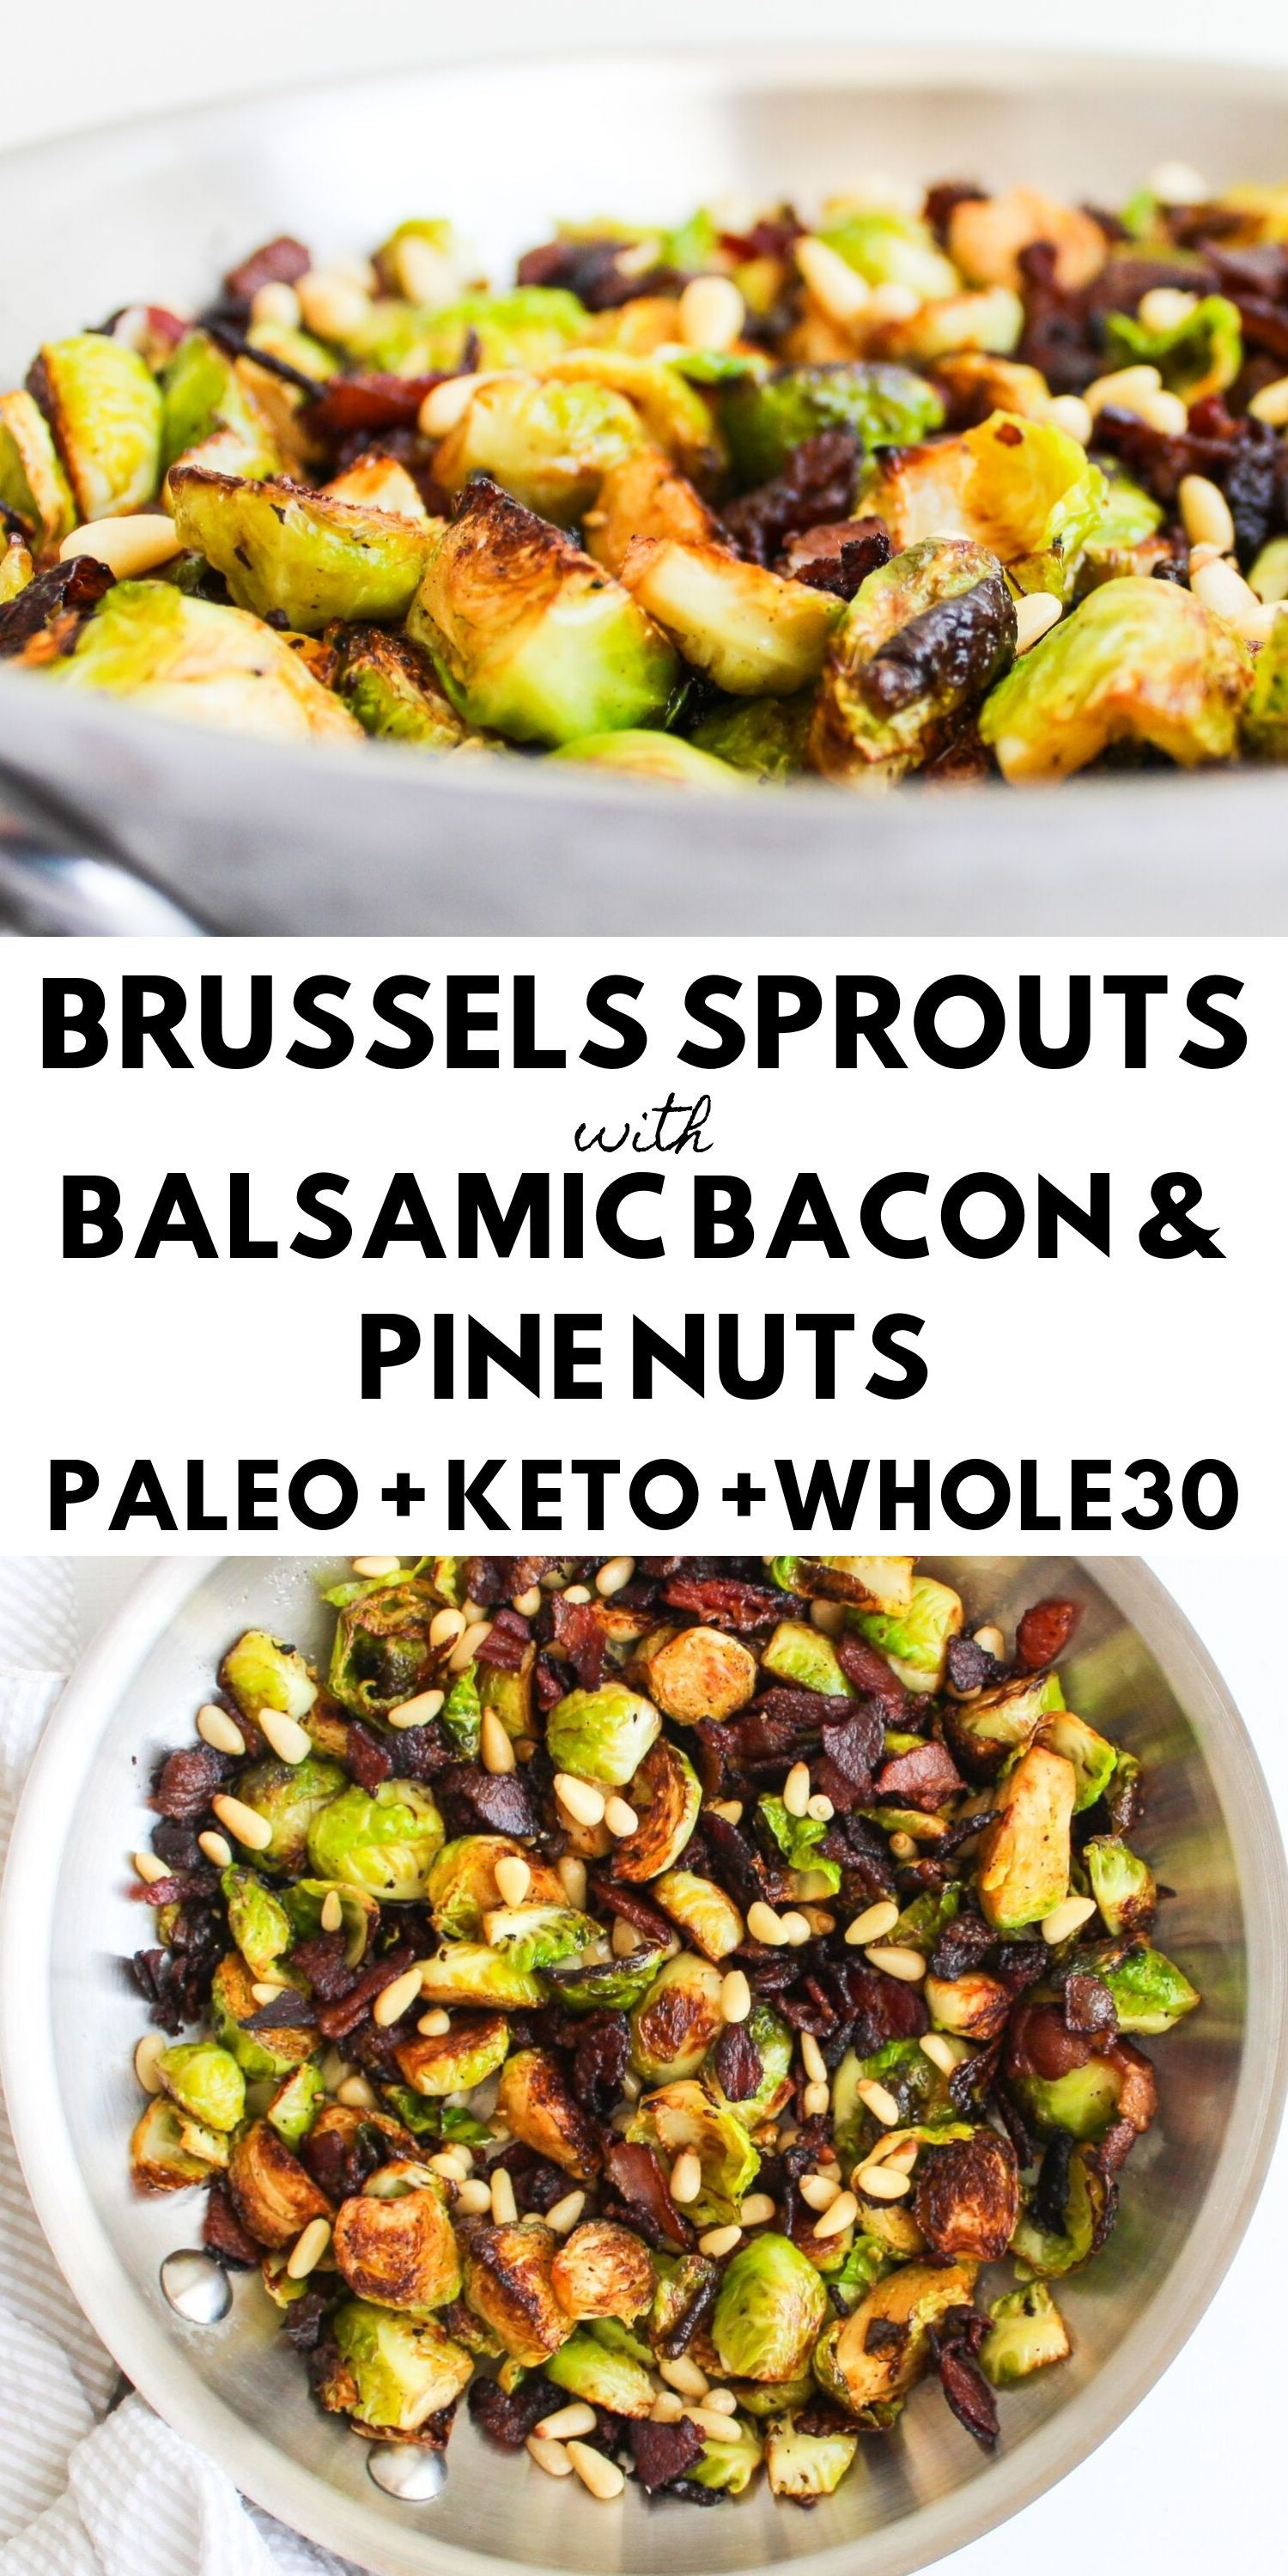 Low Carb Brussel Sprout Recipes Bacon